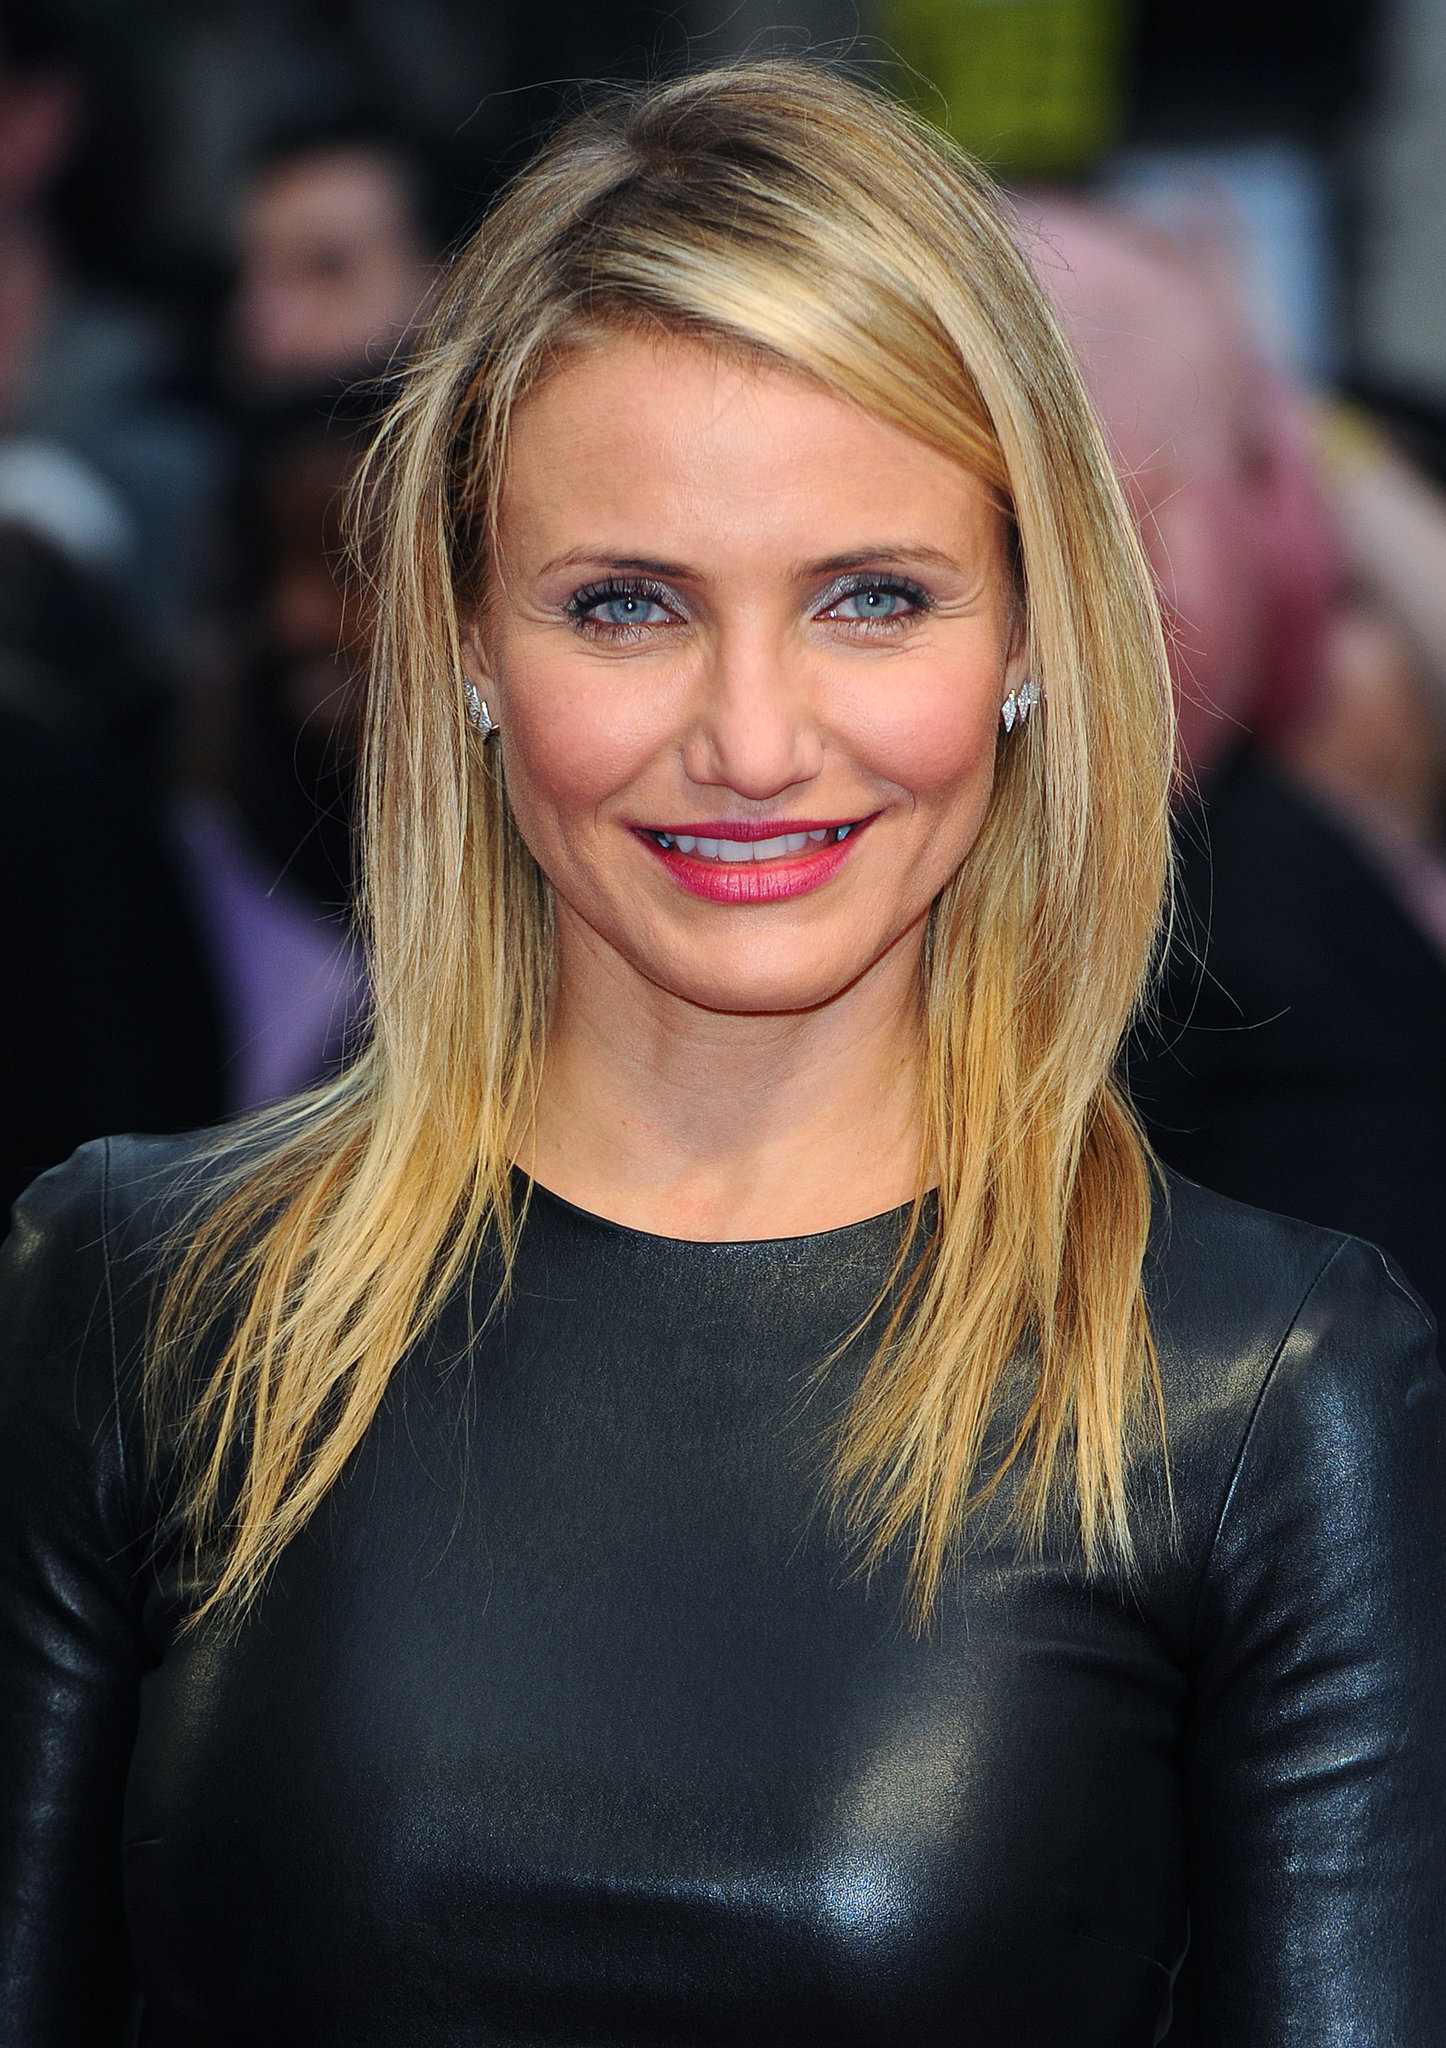 Cameron diaz plastic surgery and Celebrity